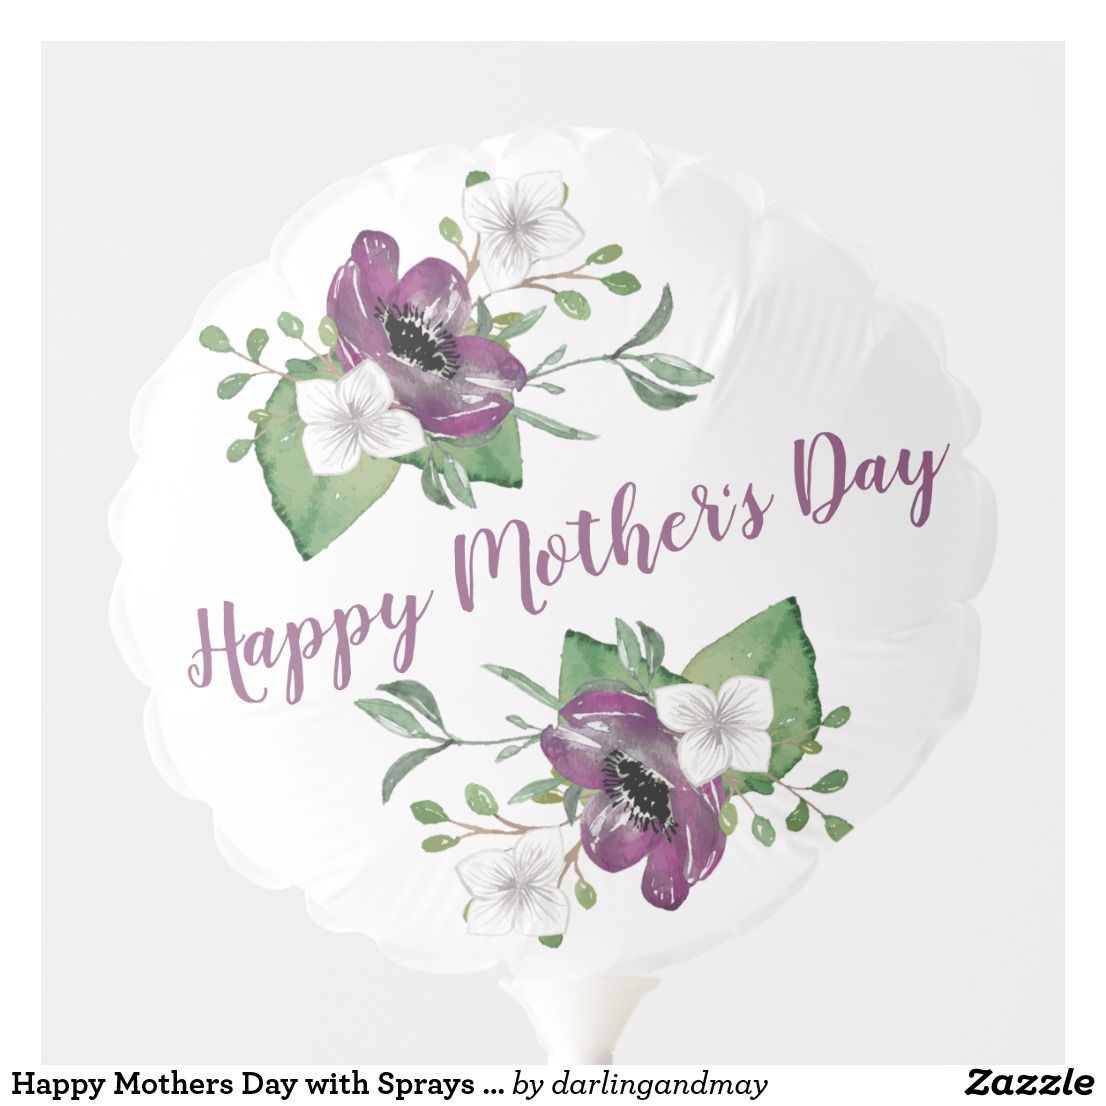 Happy Mothers Day With Sprays Of Purple Flowers Balloon Zazzle Com Happy Mothers Day Mothers Day Balloons Happy Mothers